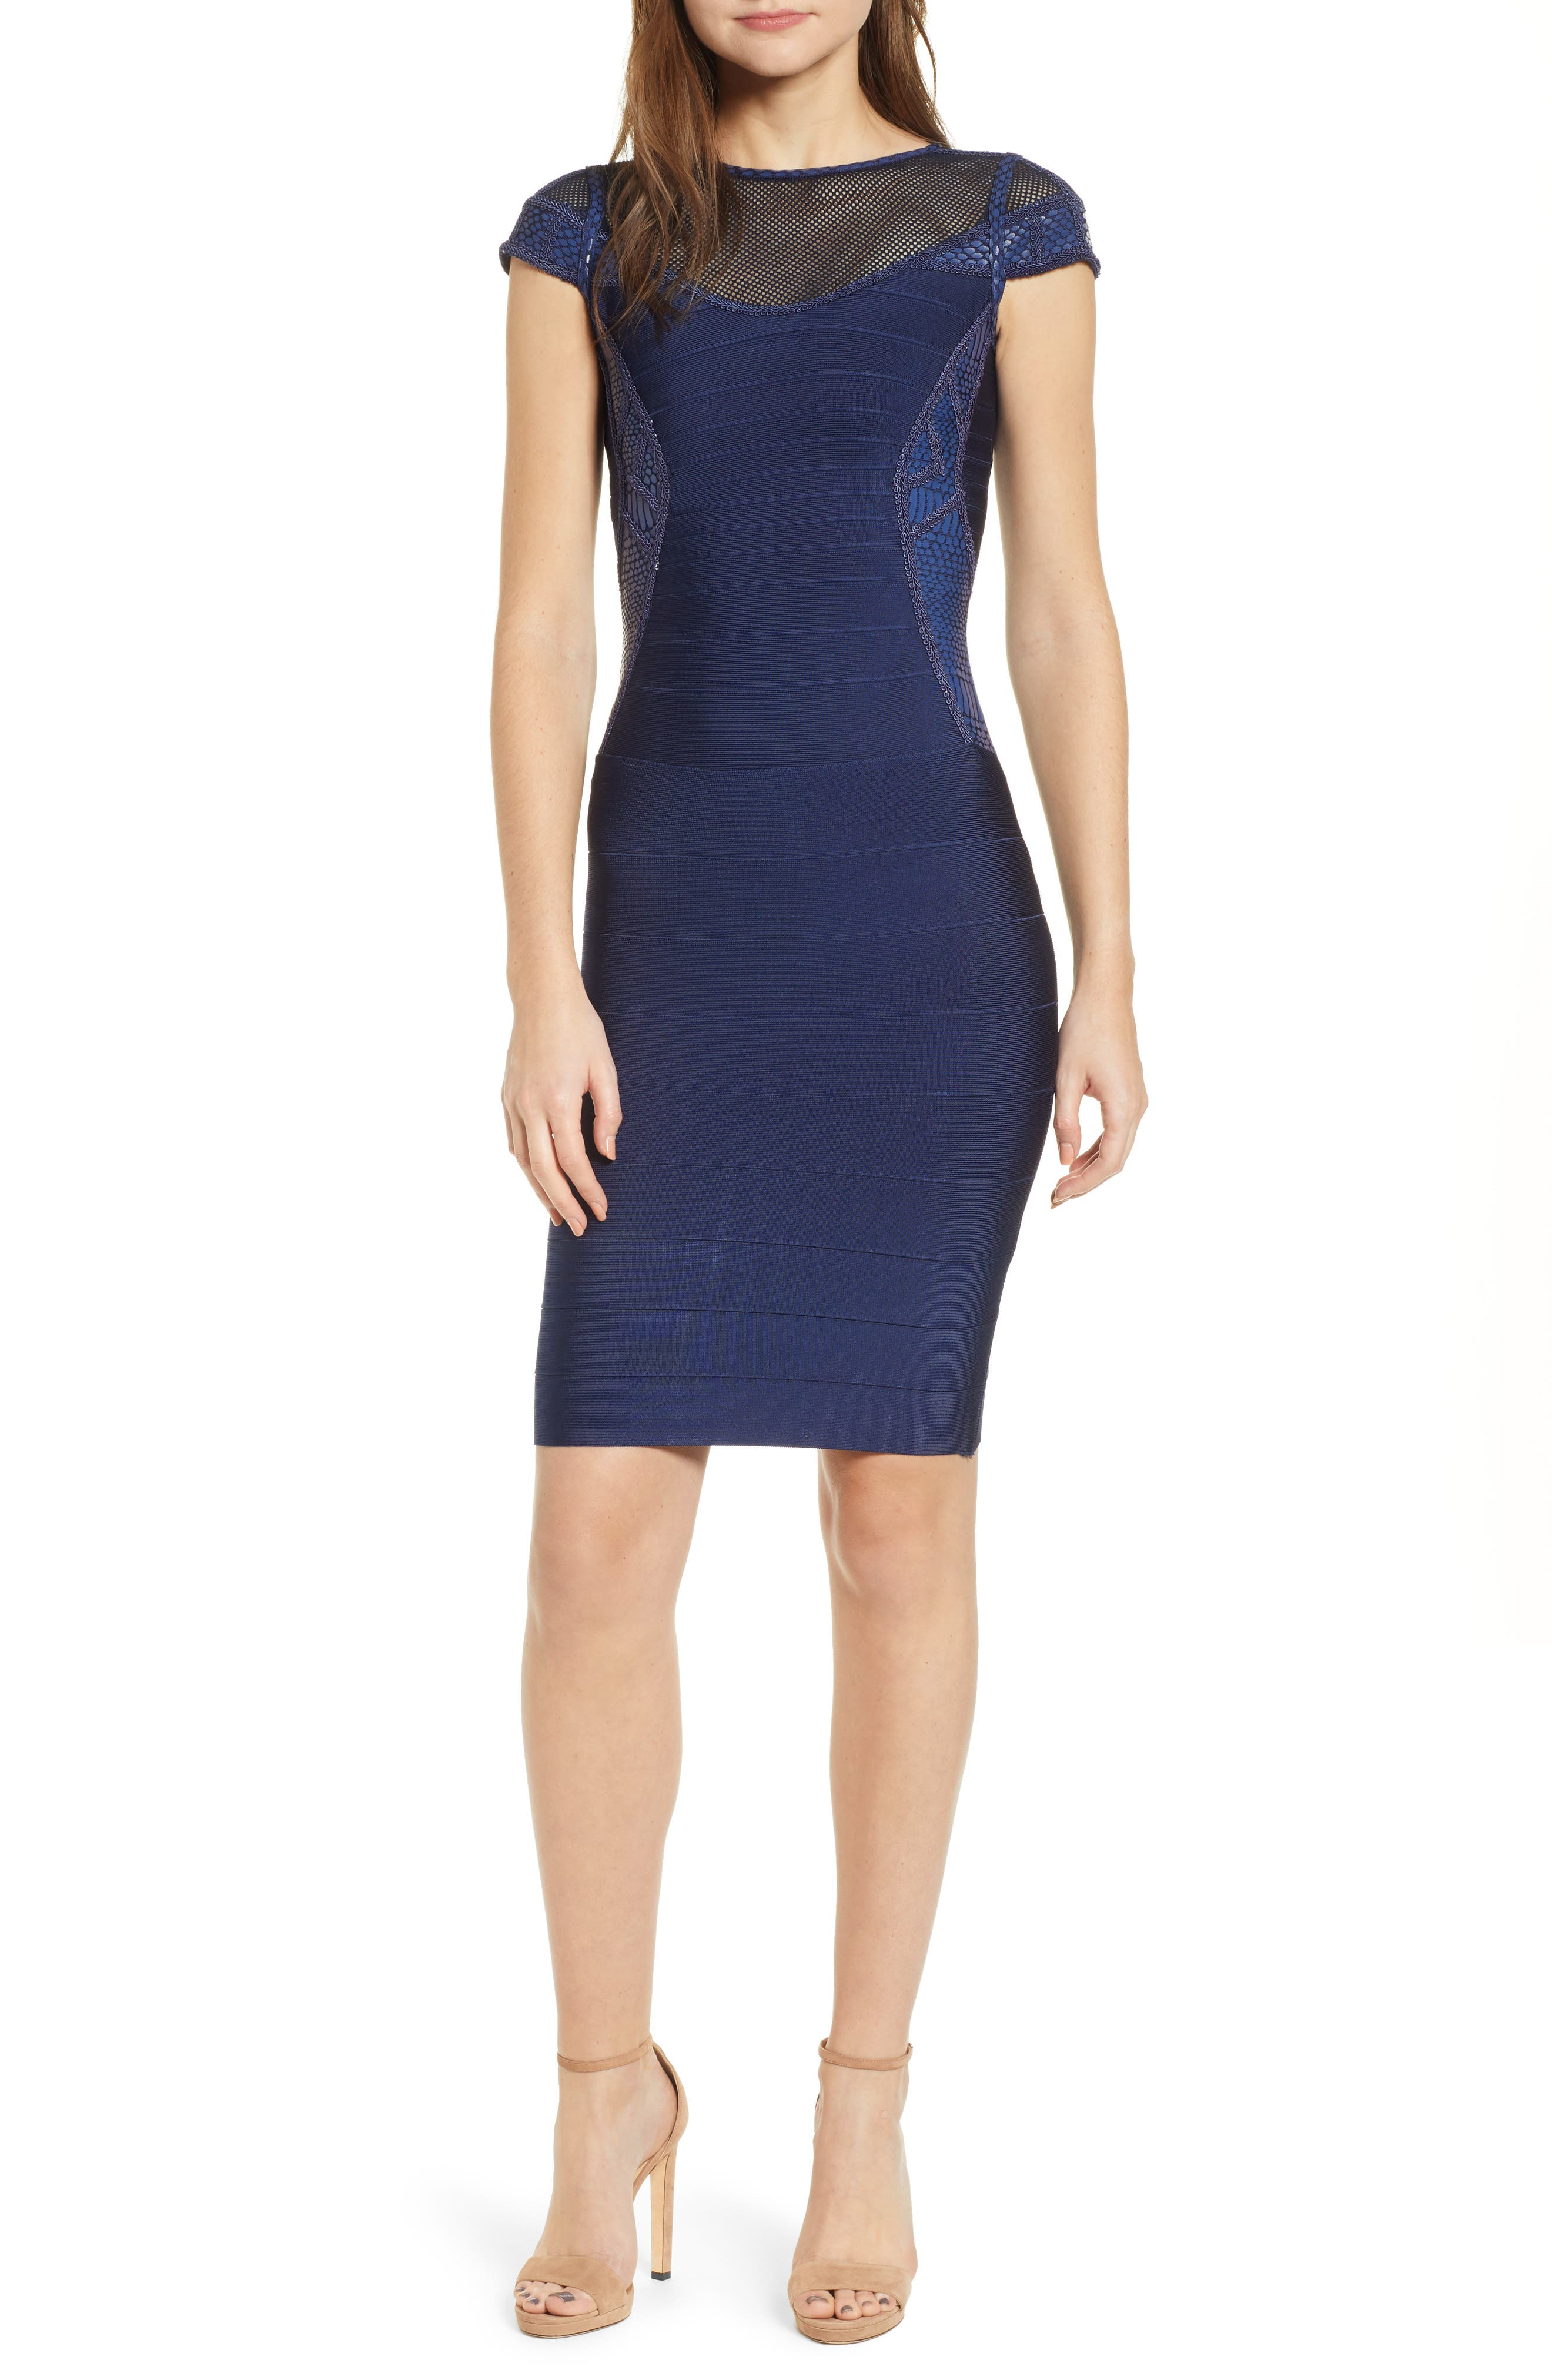 Sentimental Ny Embroidered Body-Con Dress, Blue